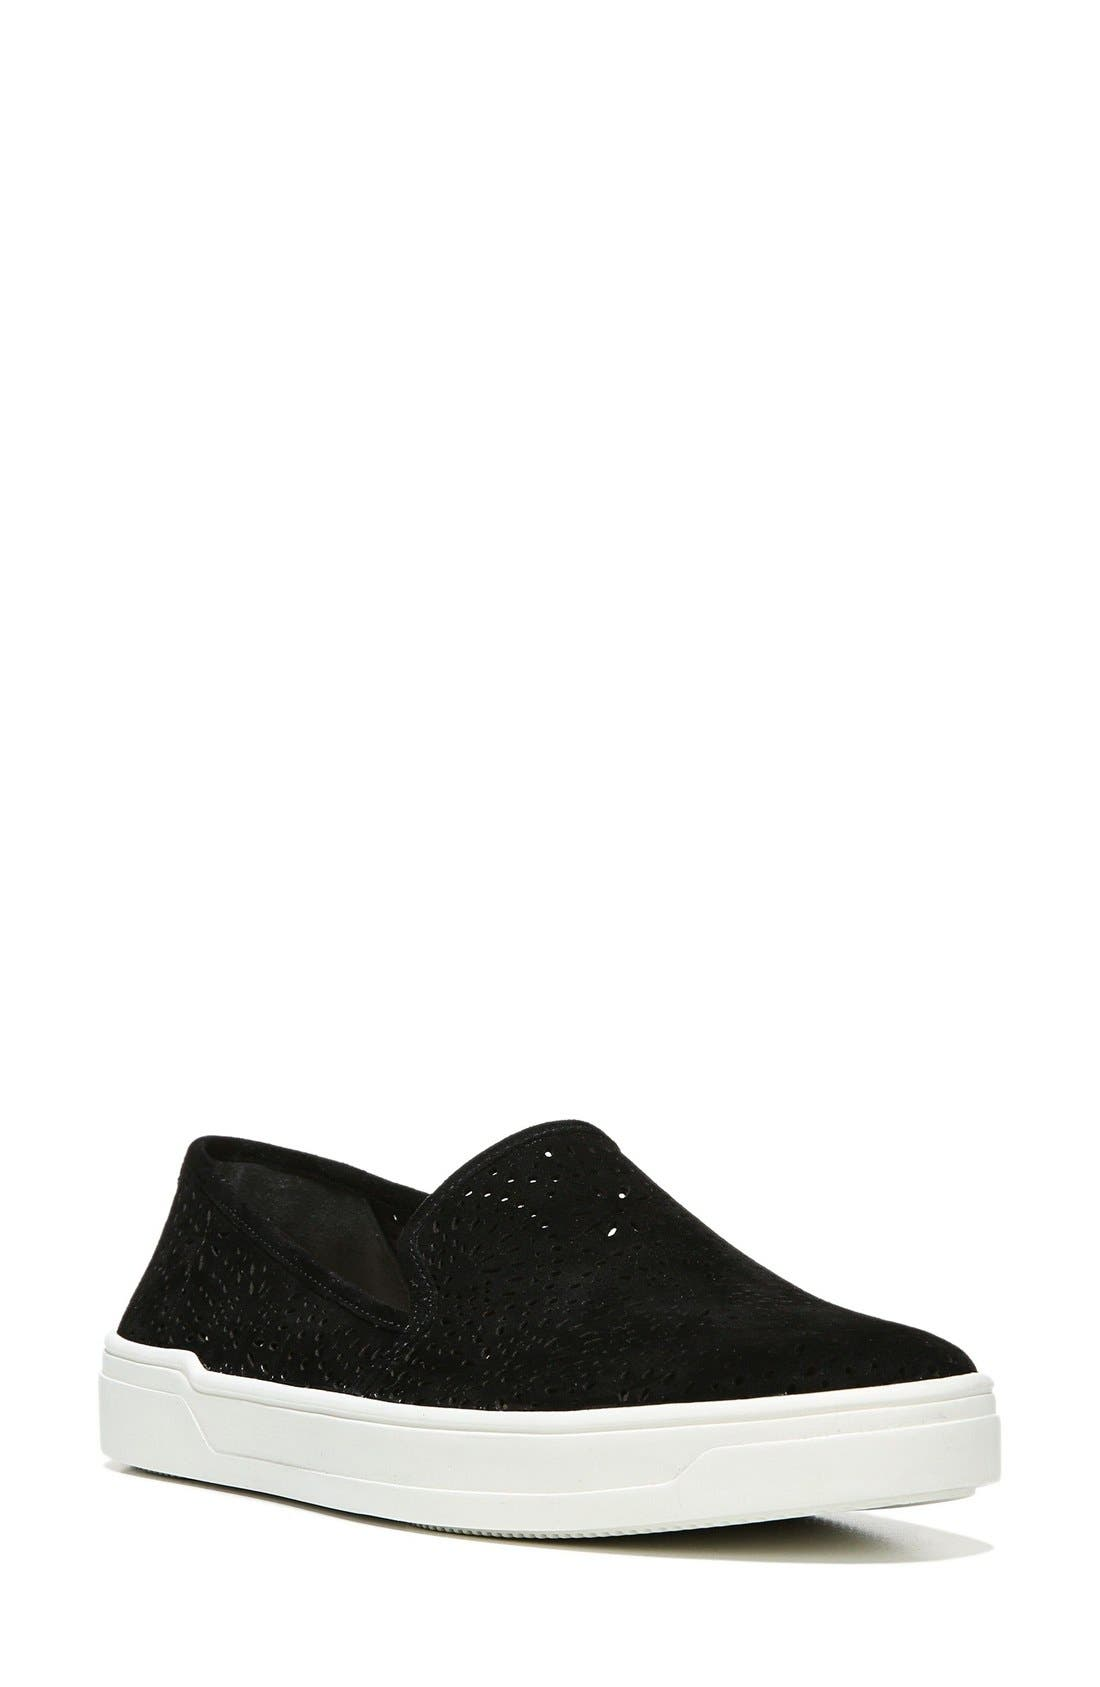 Alternate Image 1 Selected - Via Spiga Gavra Perforated Slip-On Sneaker (Women)